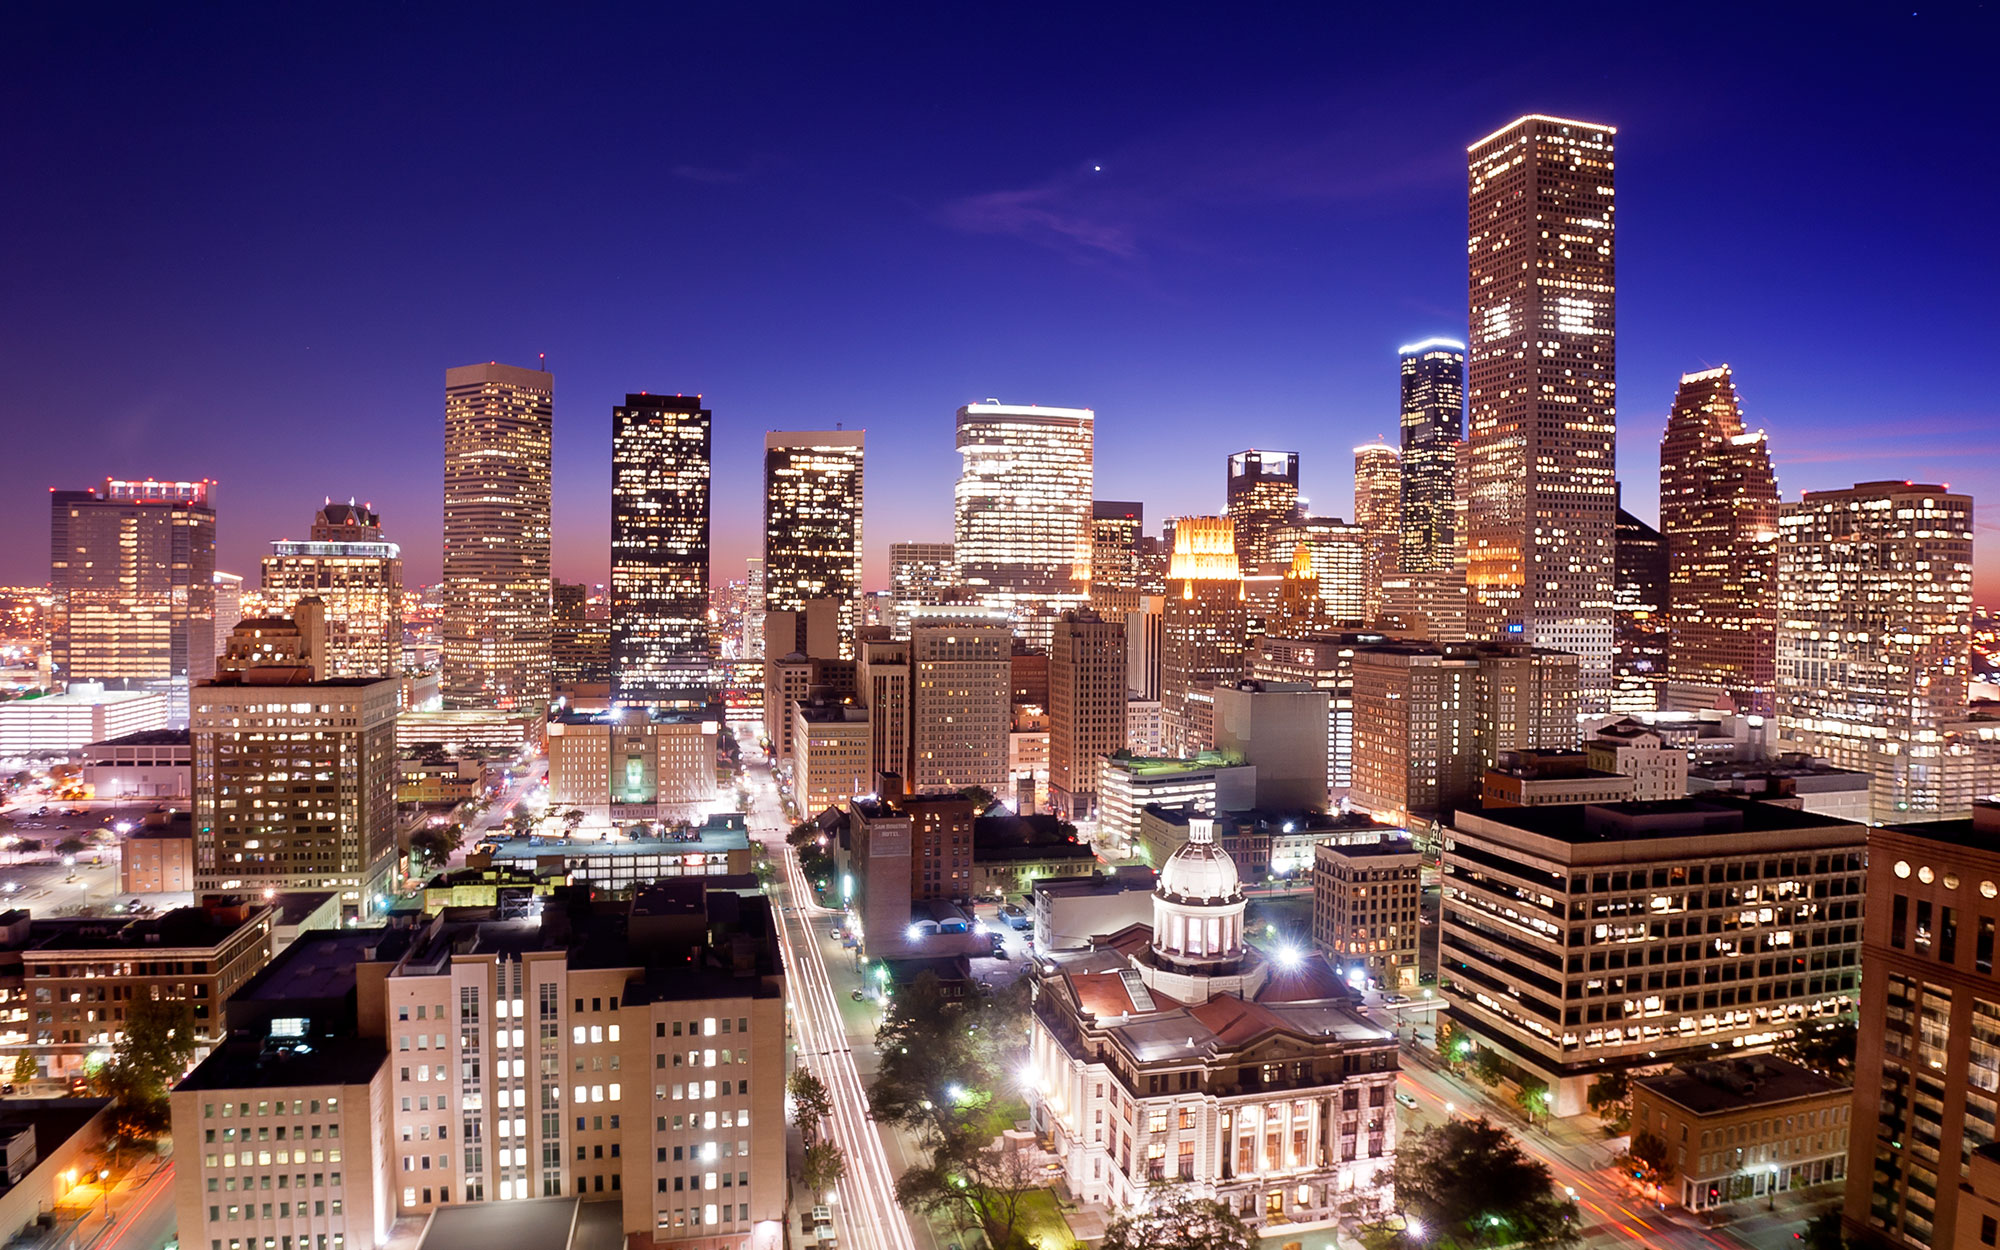 America's best cities for winter travel: Houston